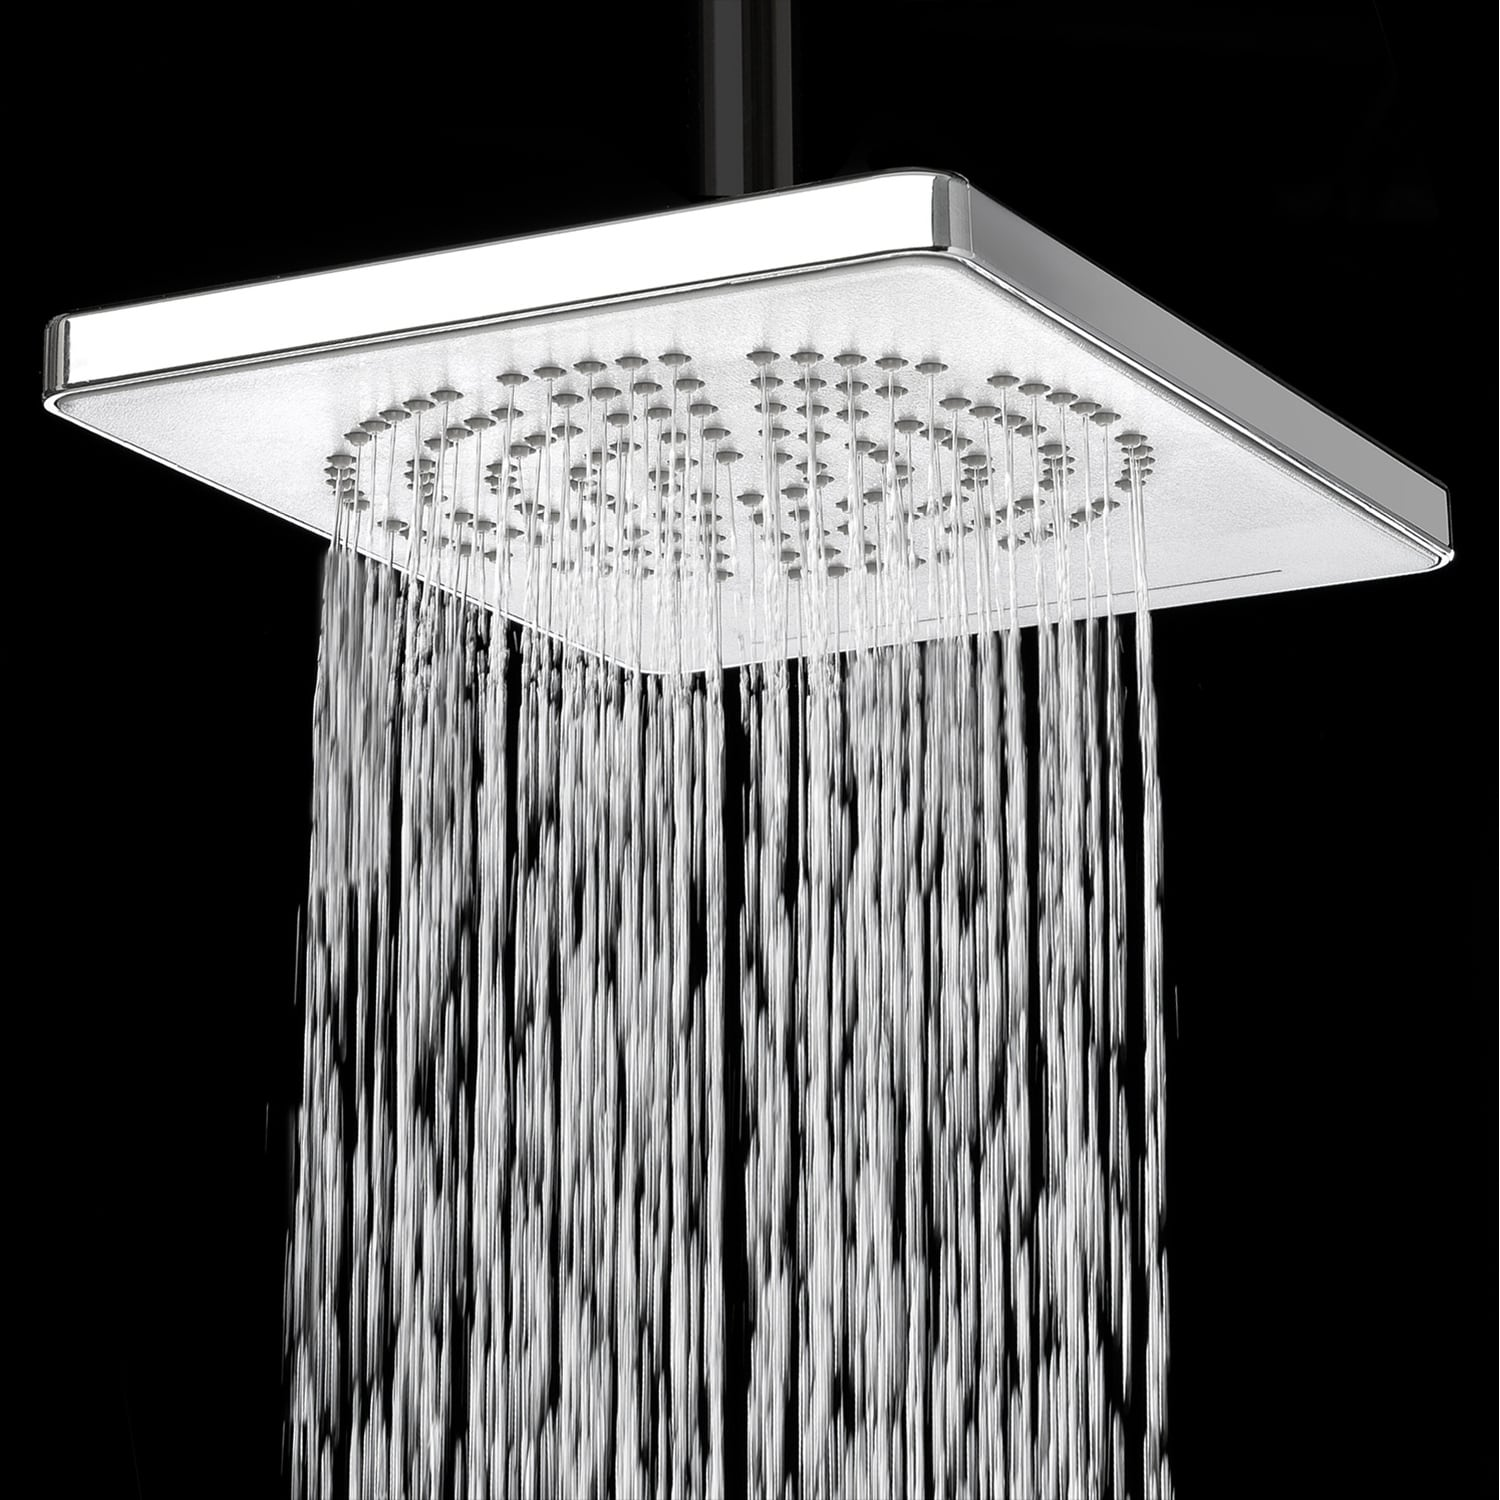 Akdy Sh0035 9 Rainfall Shower Waterfall Style Head 2 Setting Multi Function Contemporary